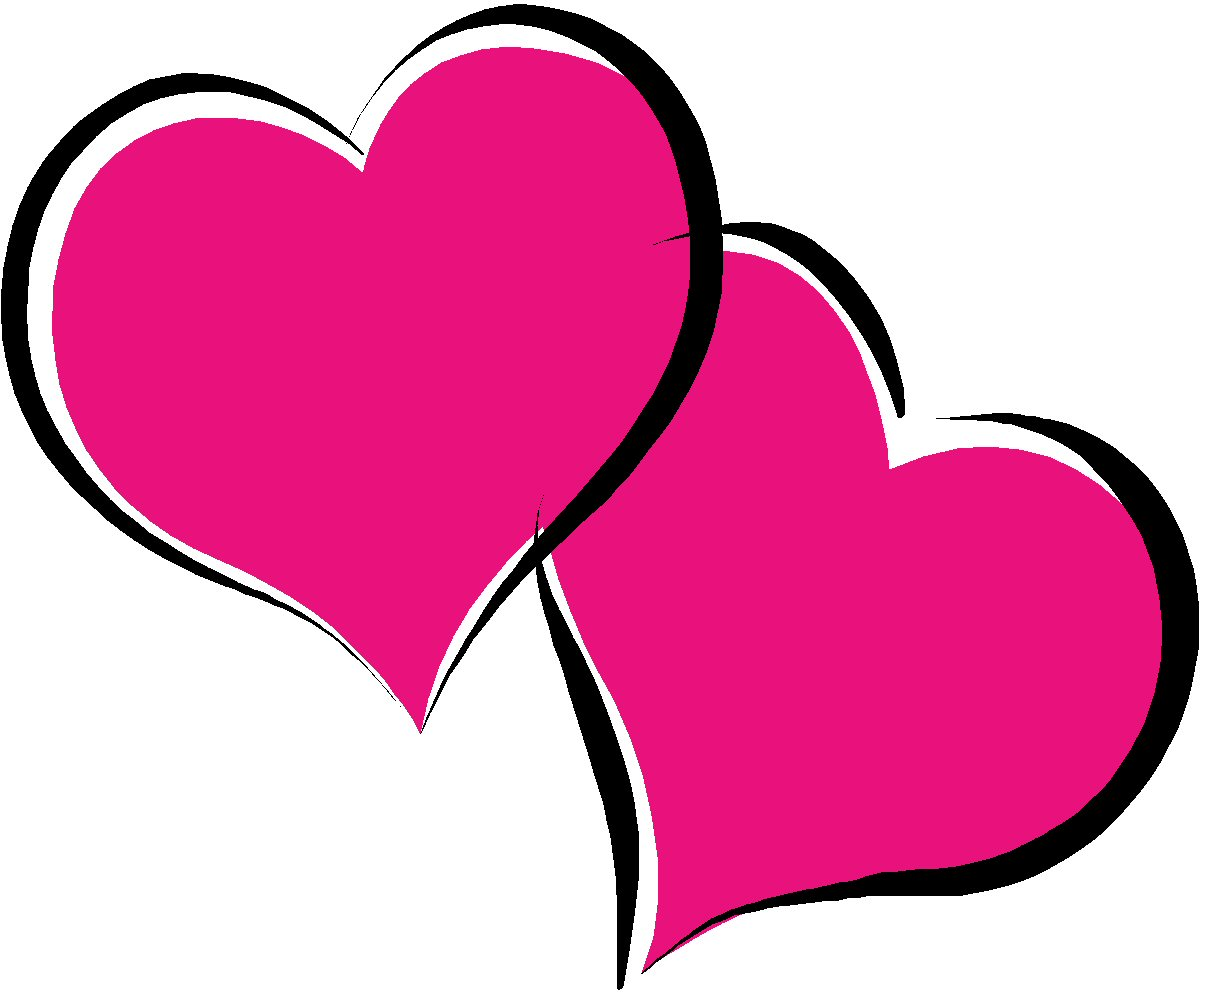 Day clip art lots of sweet cut valentines day clip arts here as well